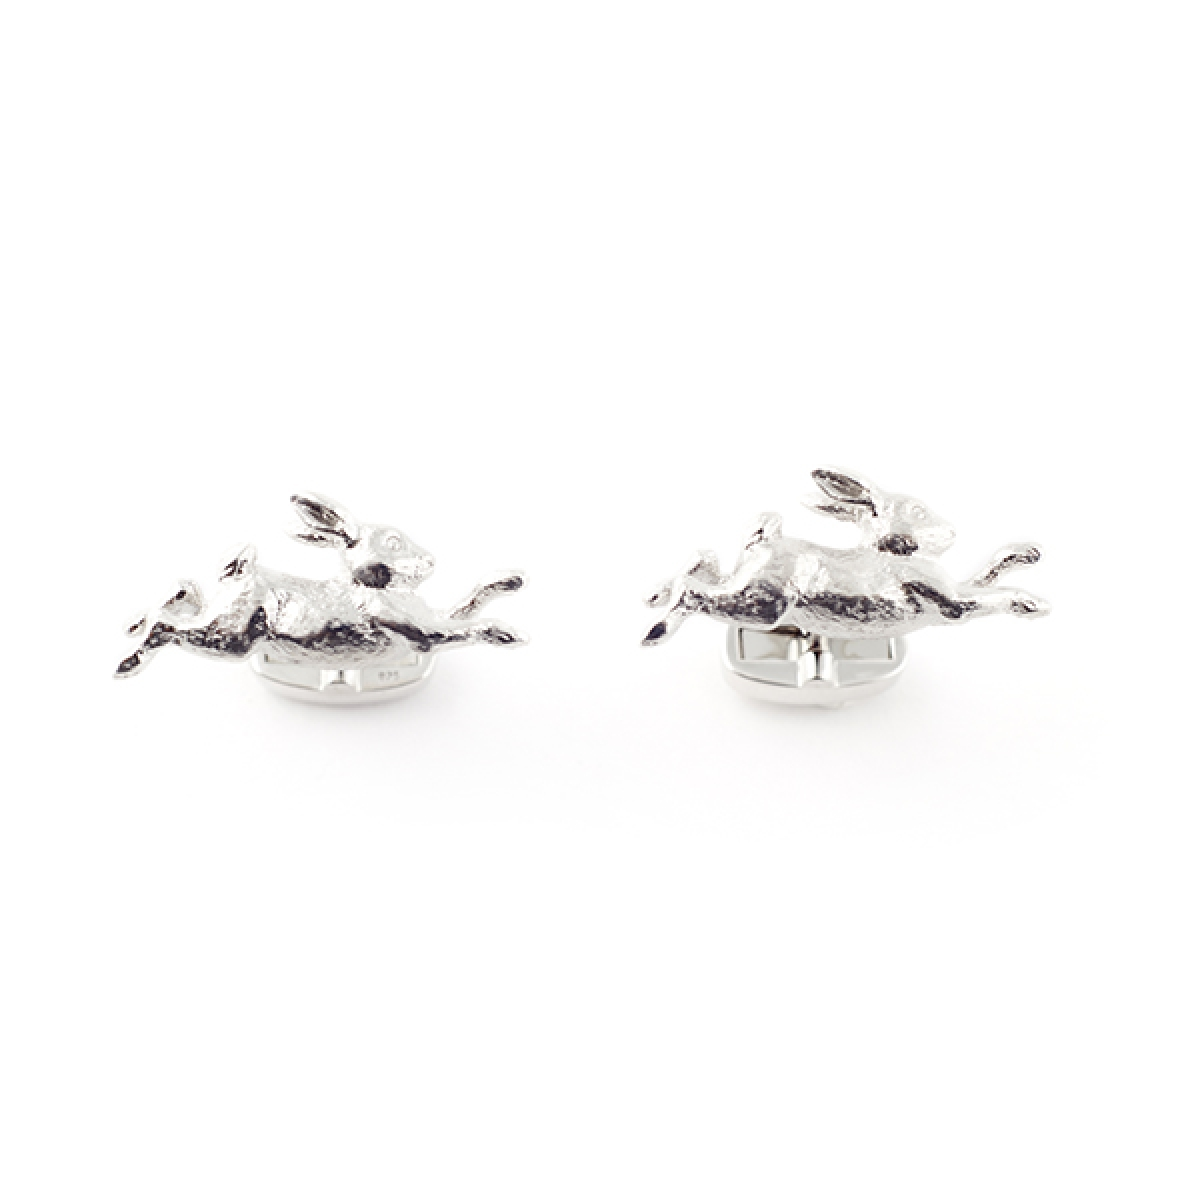 Leaping Hare Cufflinks